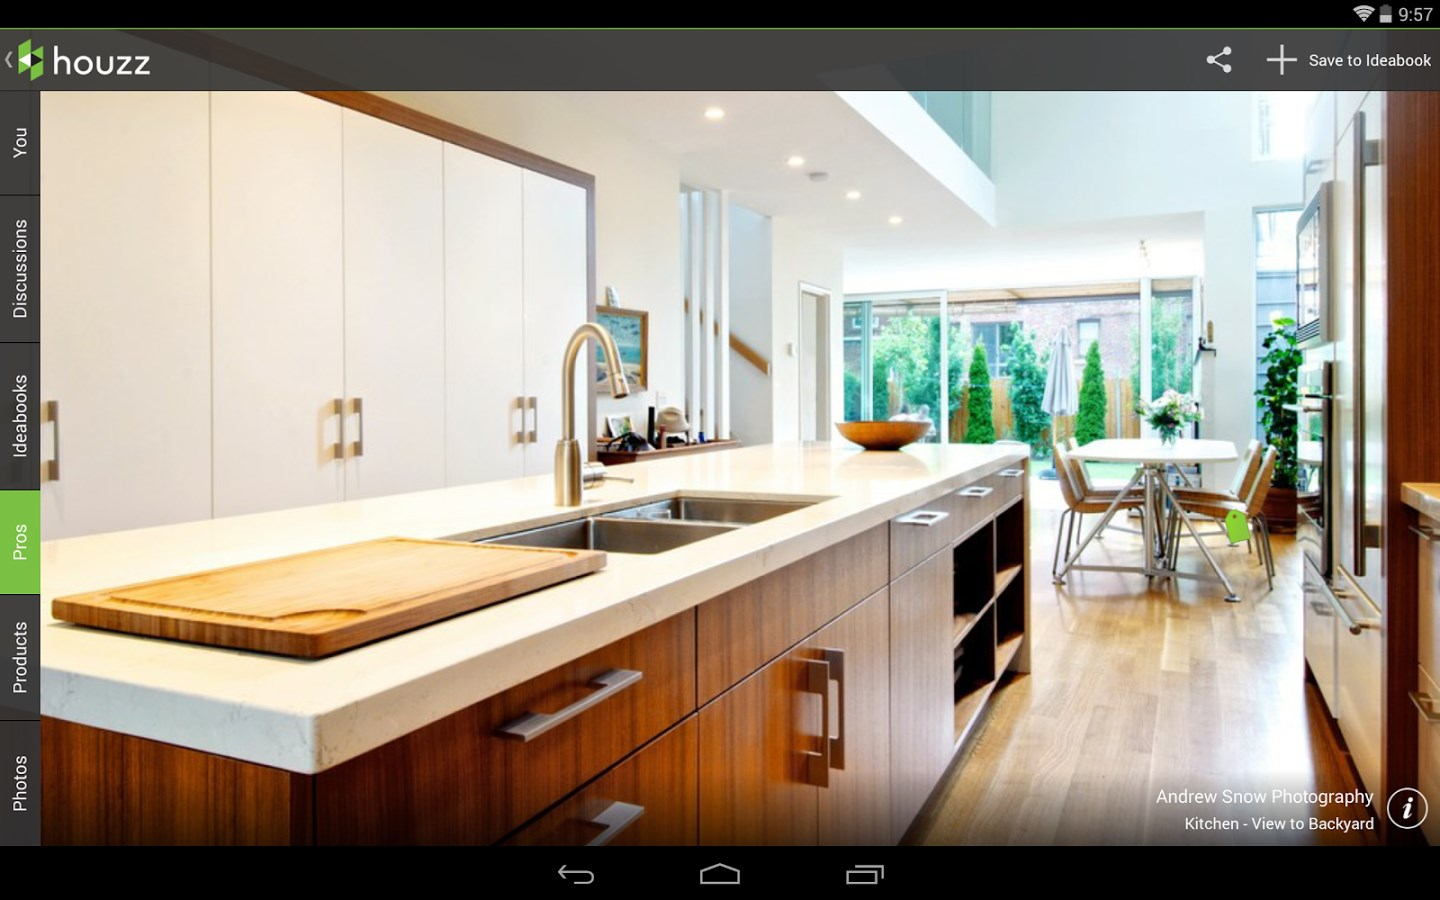 ... Imagem 2 Do Houzz Interior Design Ideas ...